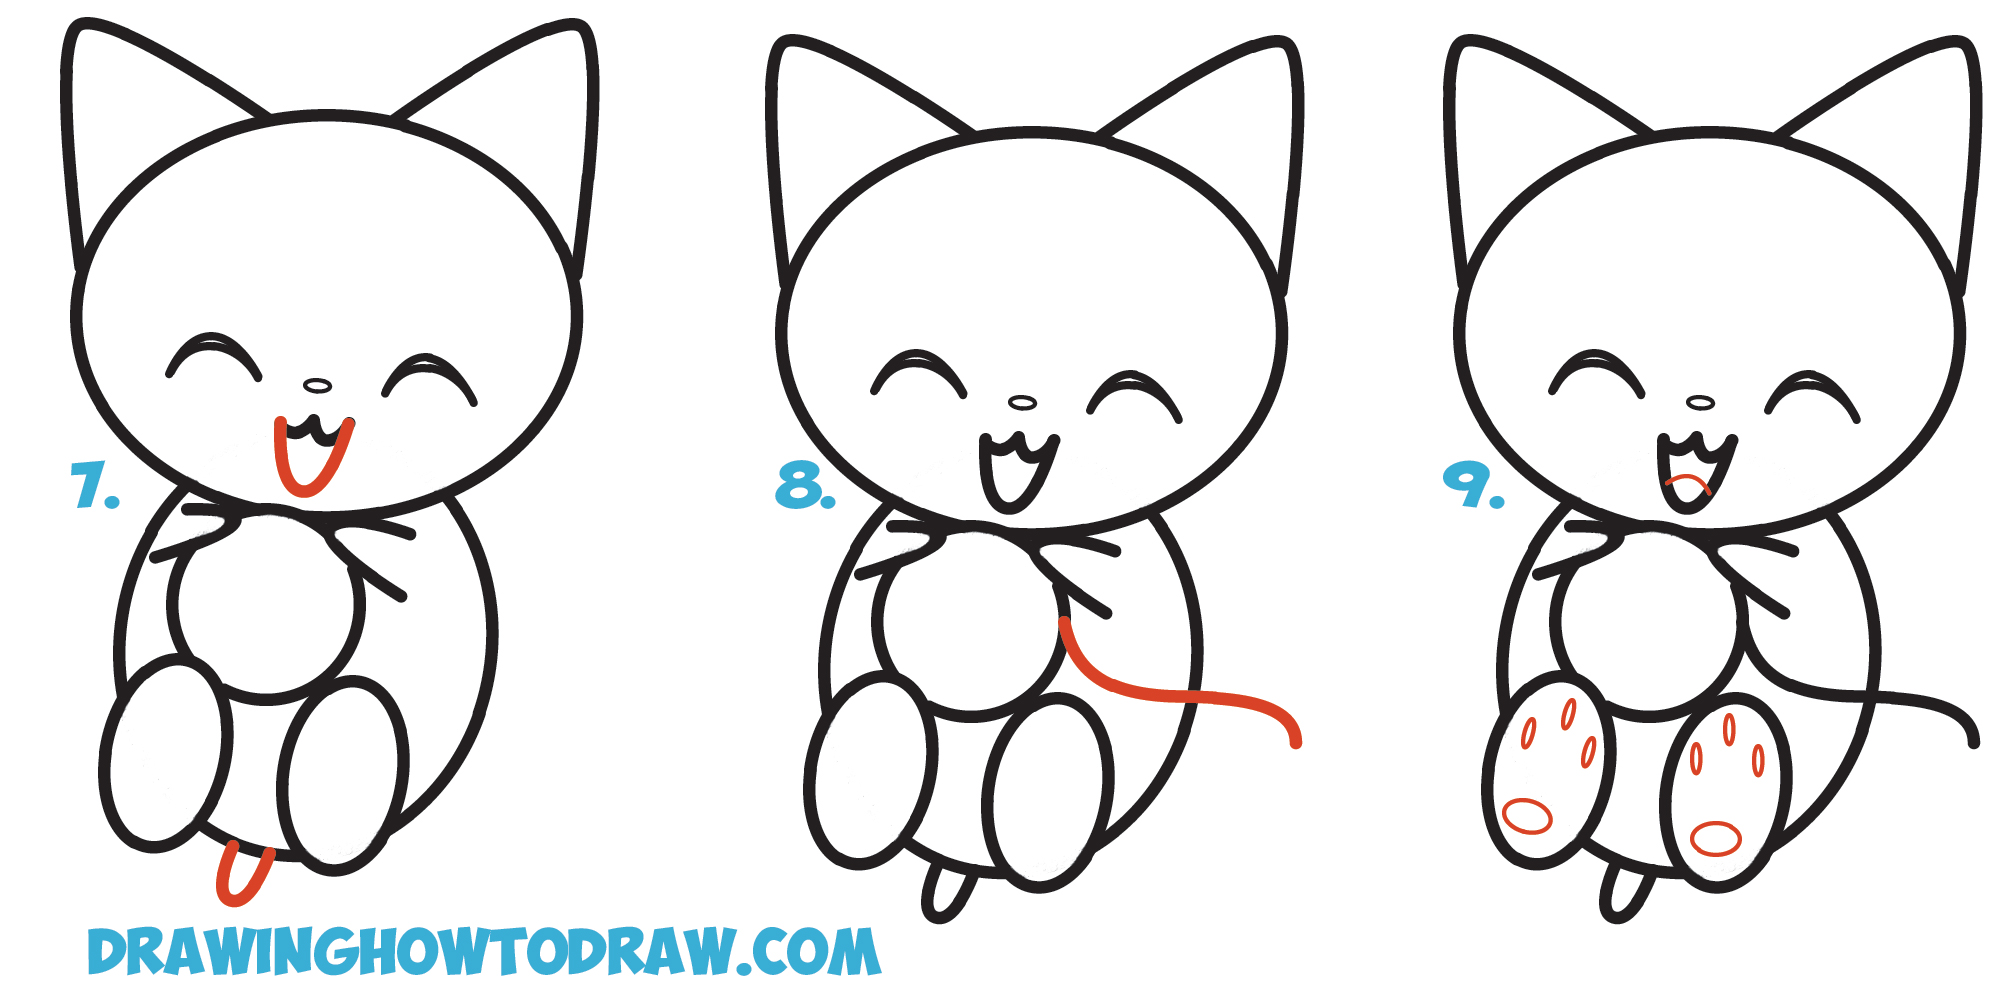 How To Draw Cute Kawaii Kitten Cat Playing With Yarn